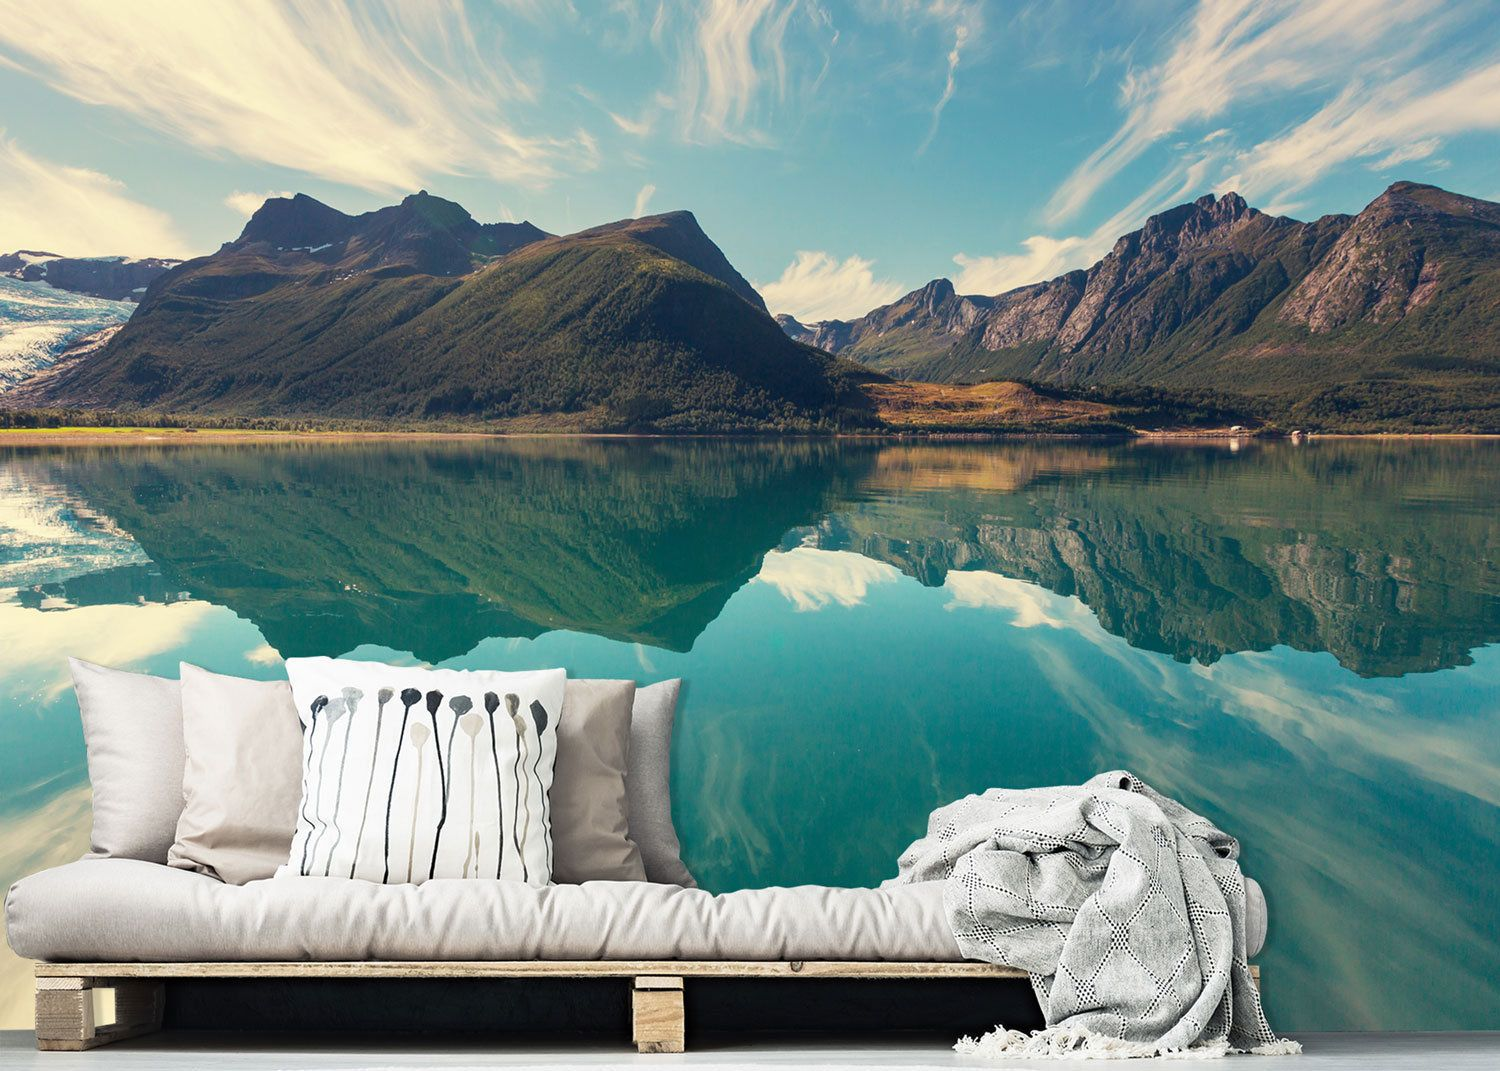 Crystal Summer Nature Scene Wall mural, Lake and Mountain